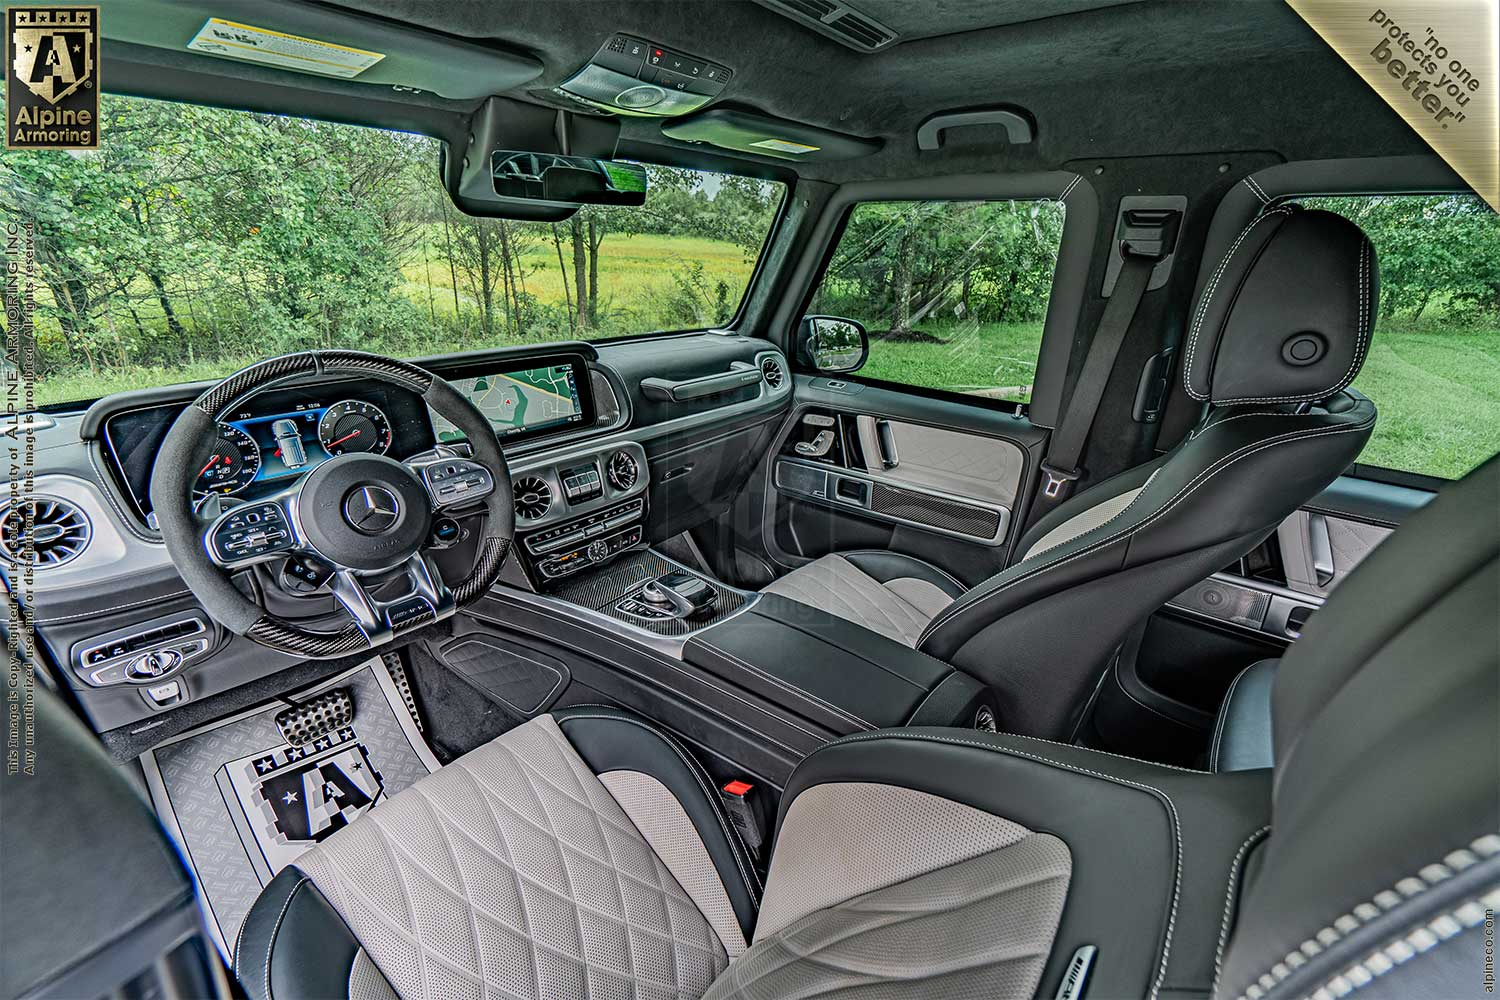 New Inventory Armored Mercedes-Benz G63 Level A9/B6+ Exterior & Interior Images VIN:5920